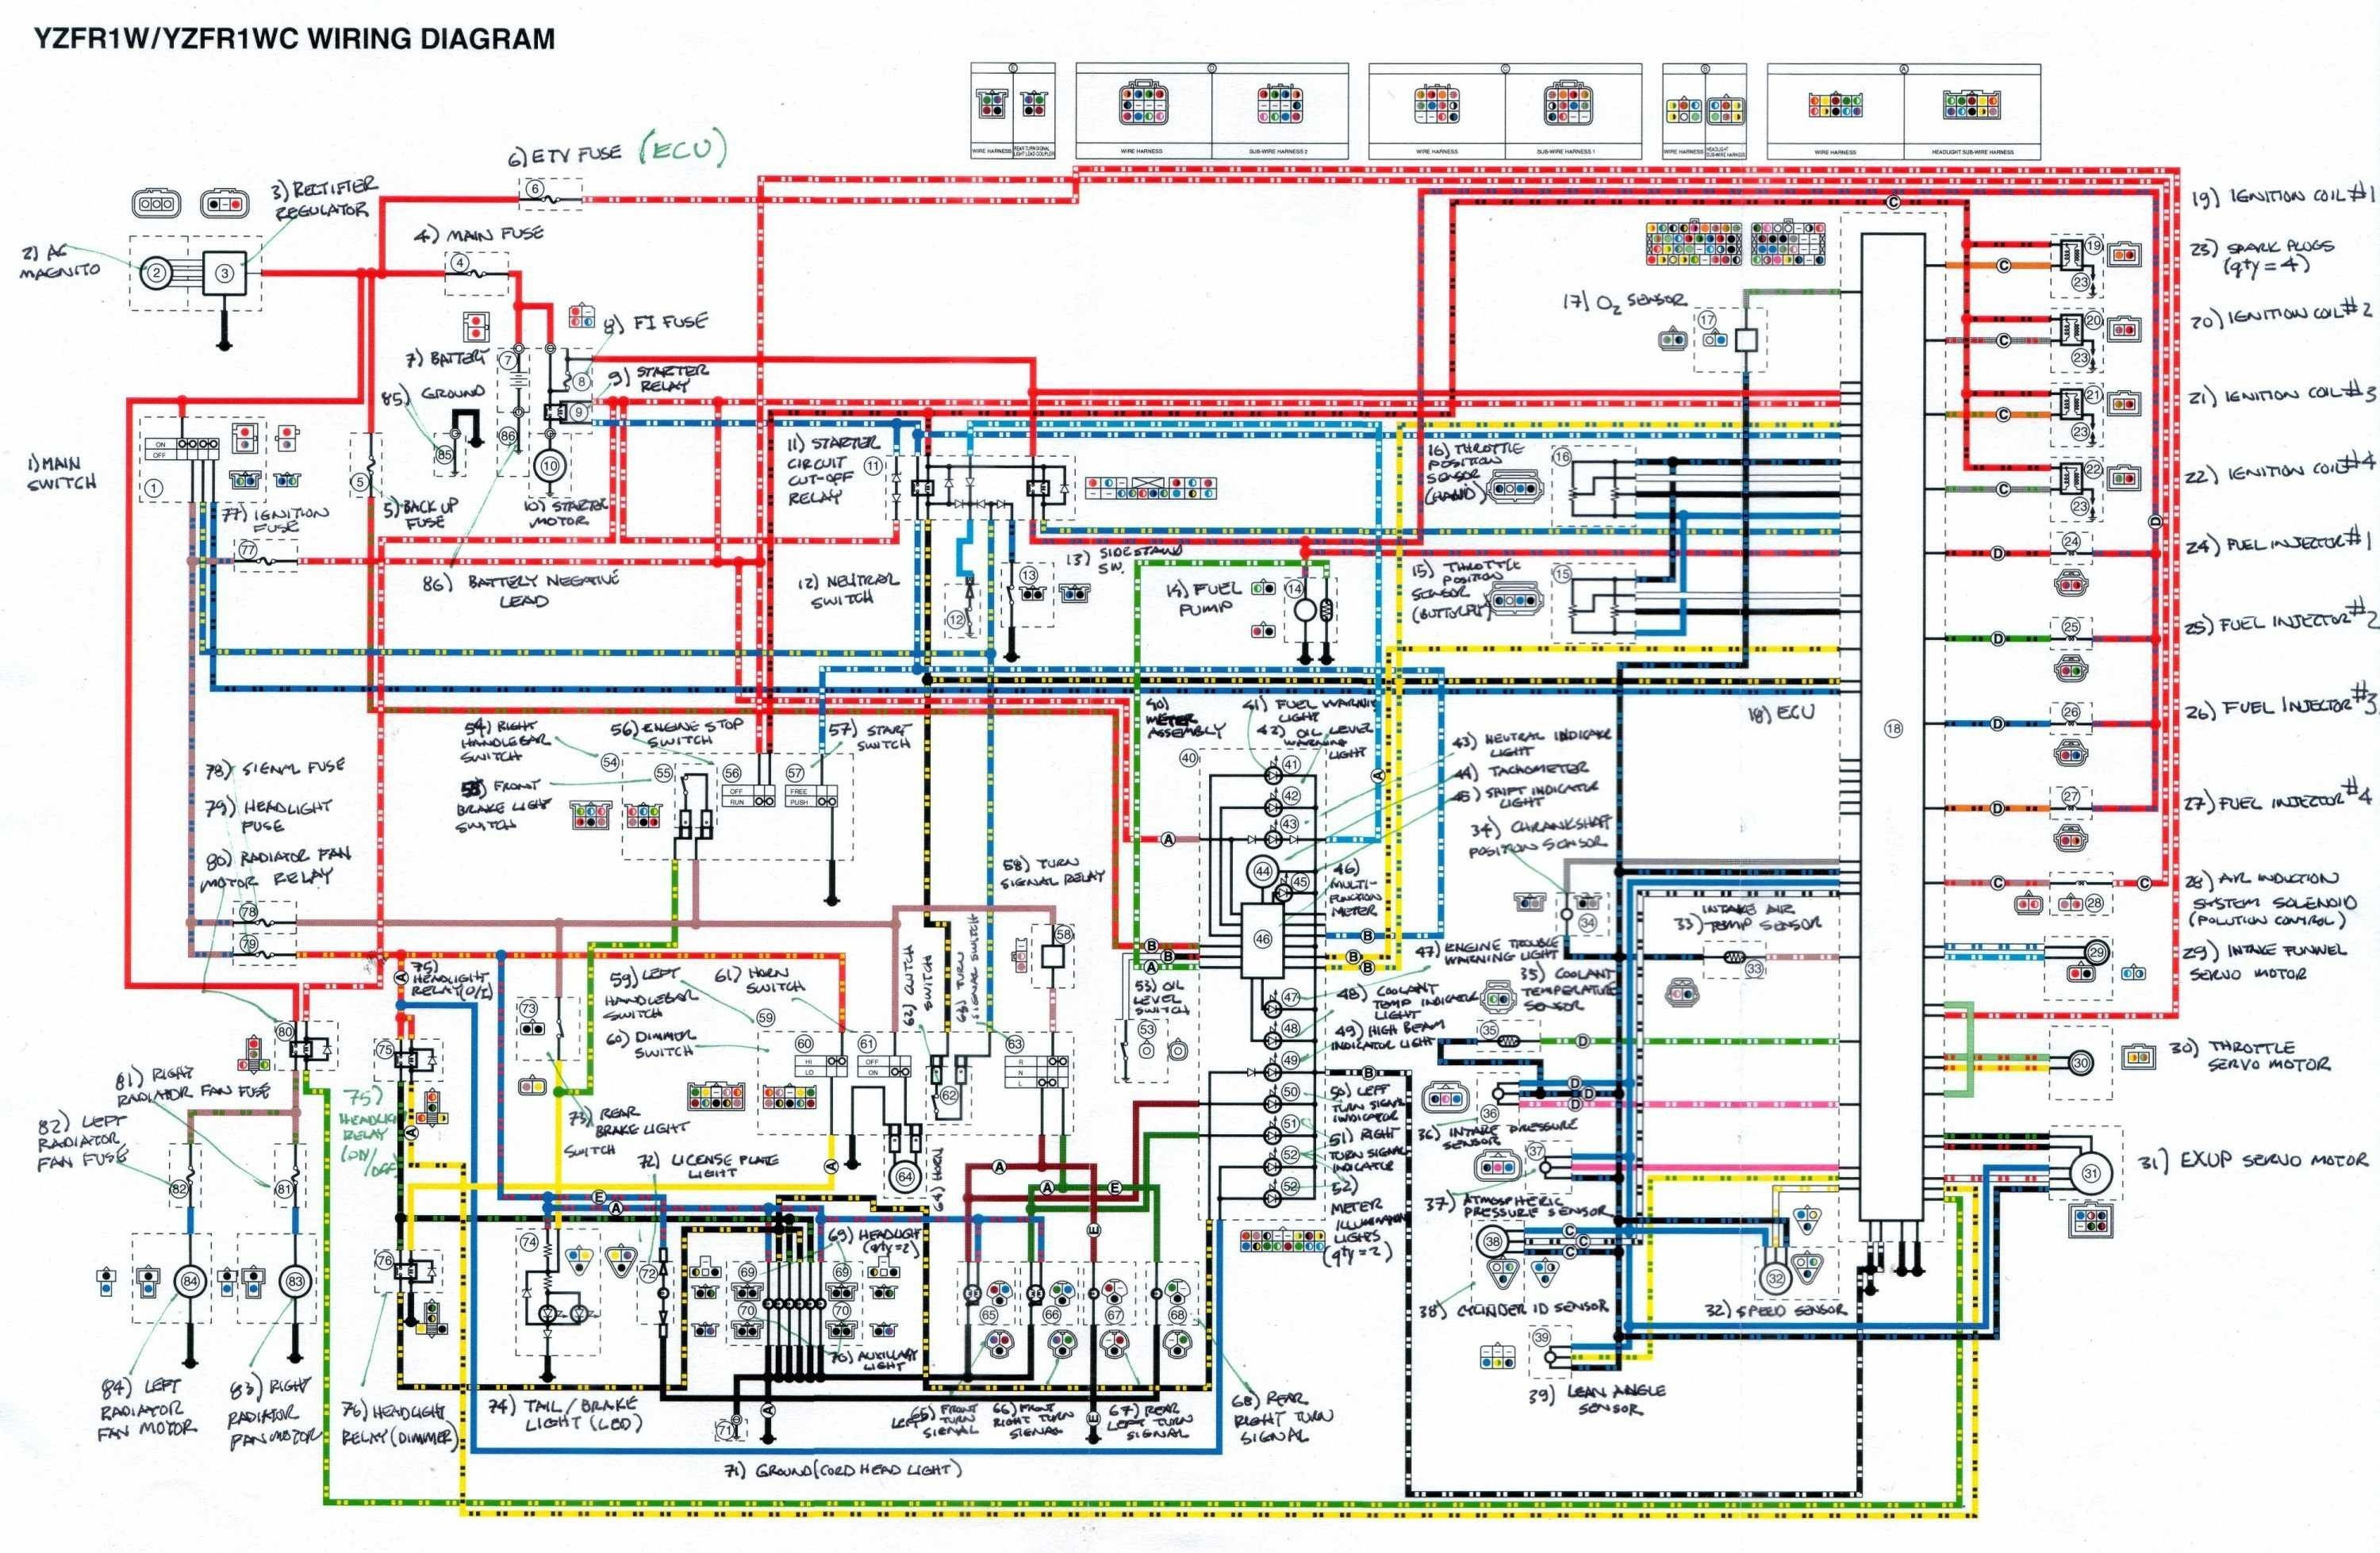 Unique Wiring Diagram Kelistrikan Ac Diagram Diagramtemplate Diagramsample Check More At Https Servisi Co Wiring Diagram Kelistrikan Diagram Cb750 Yamaha